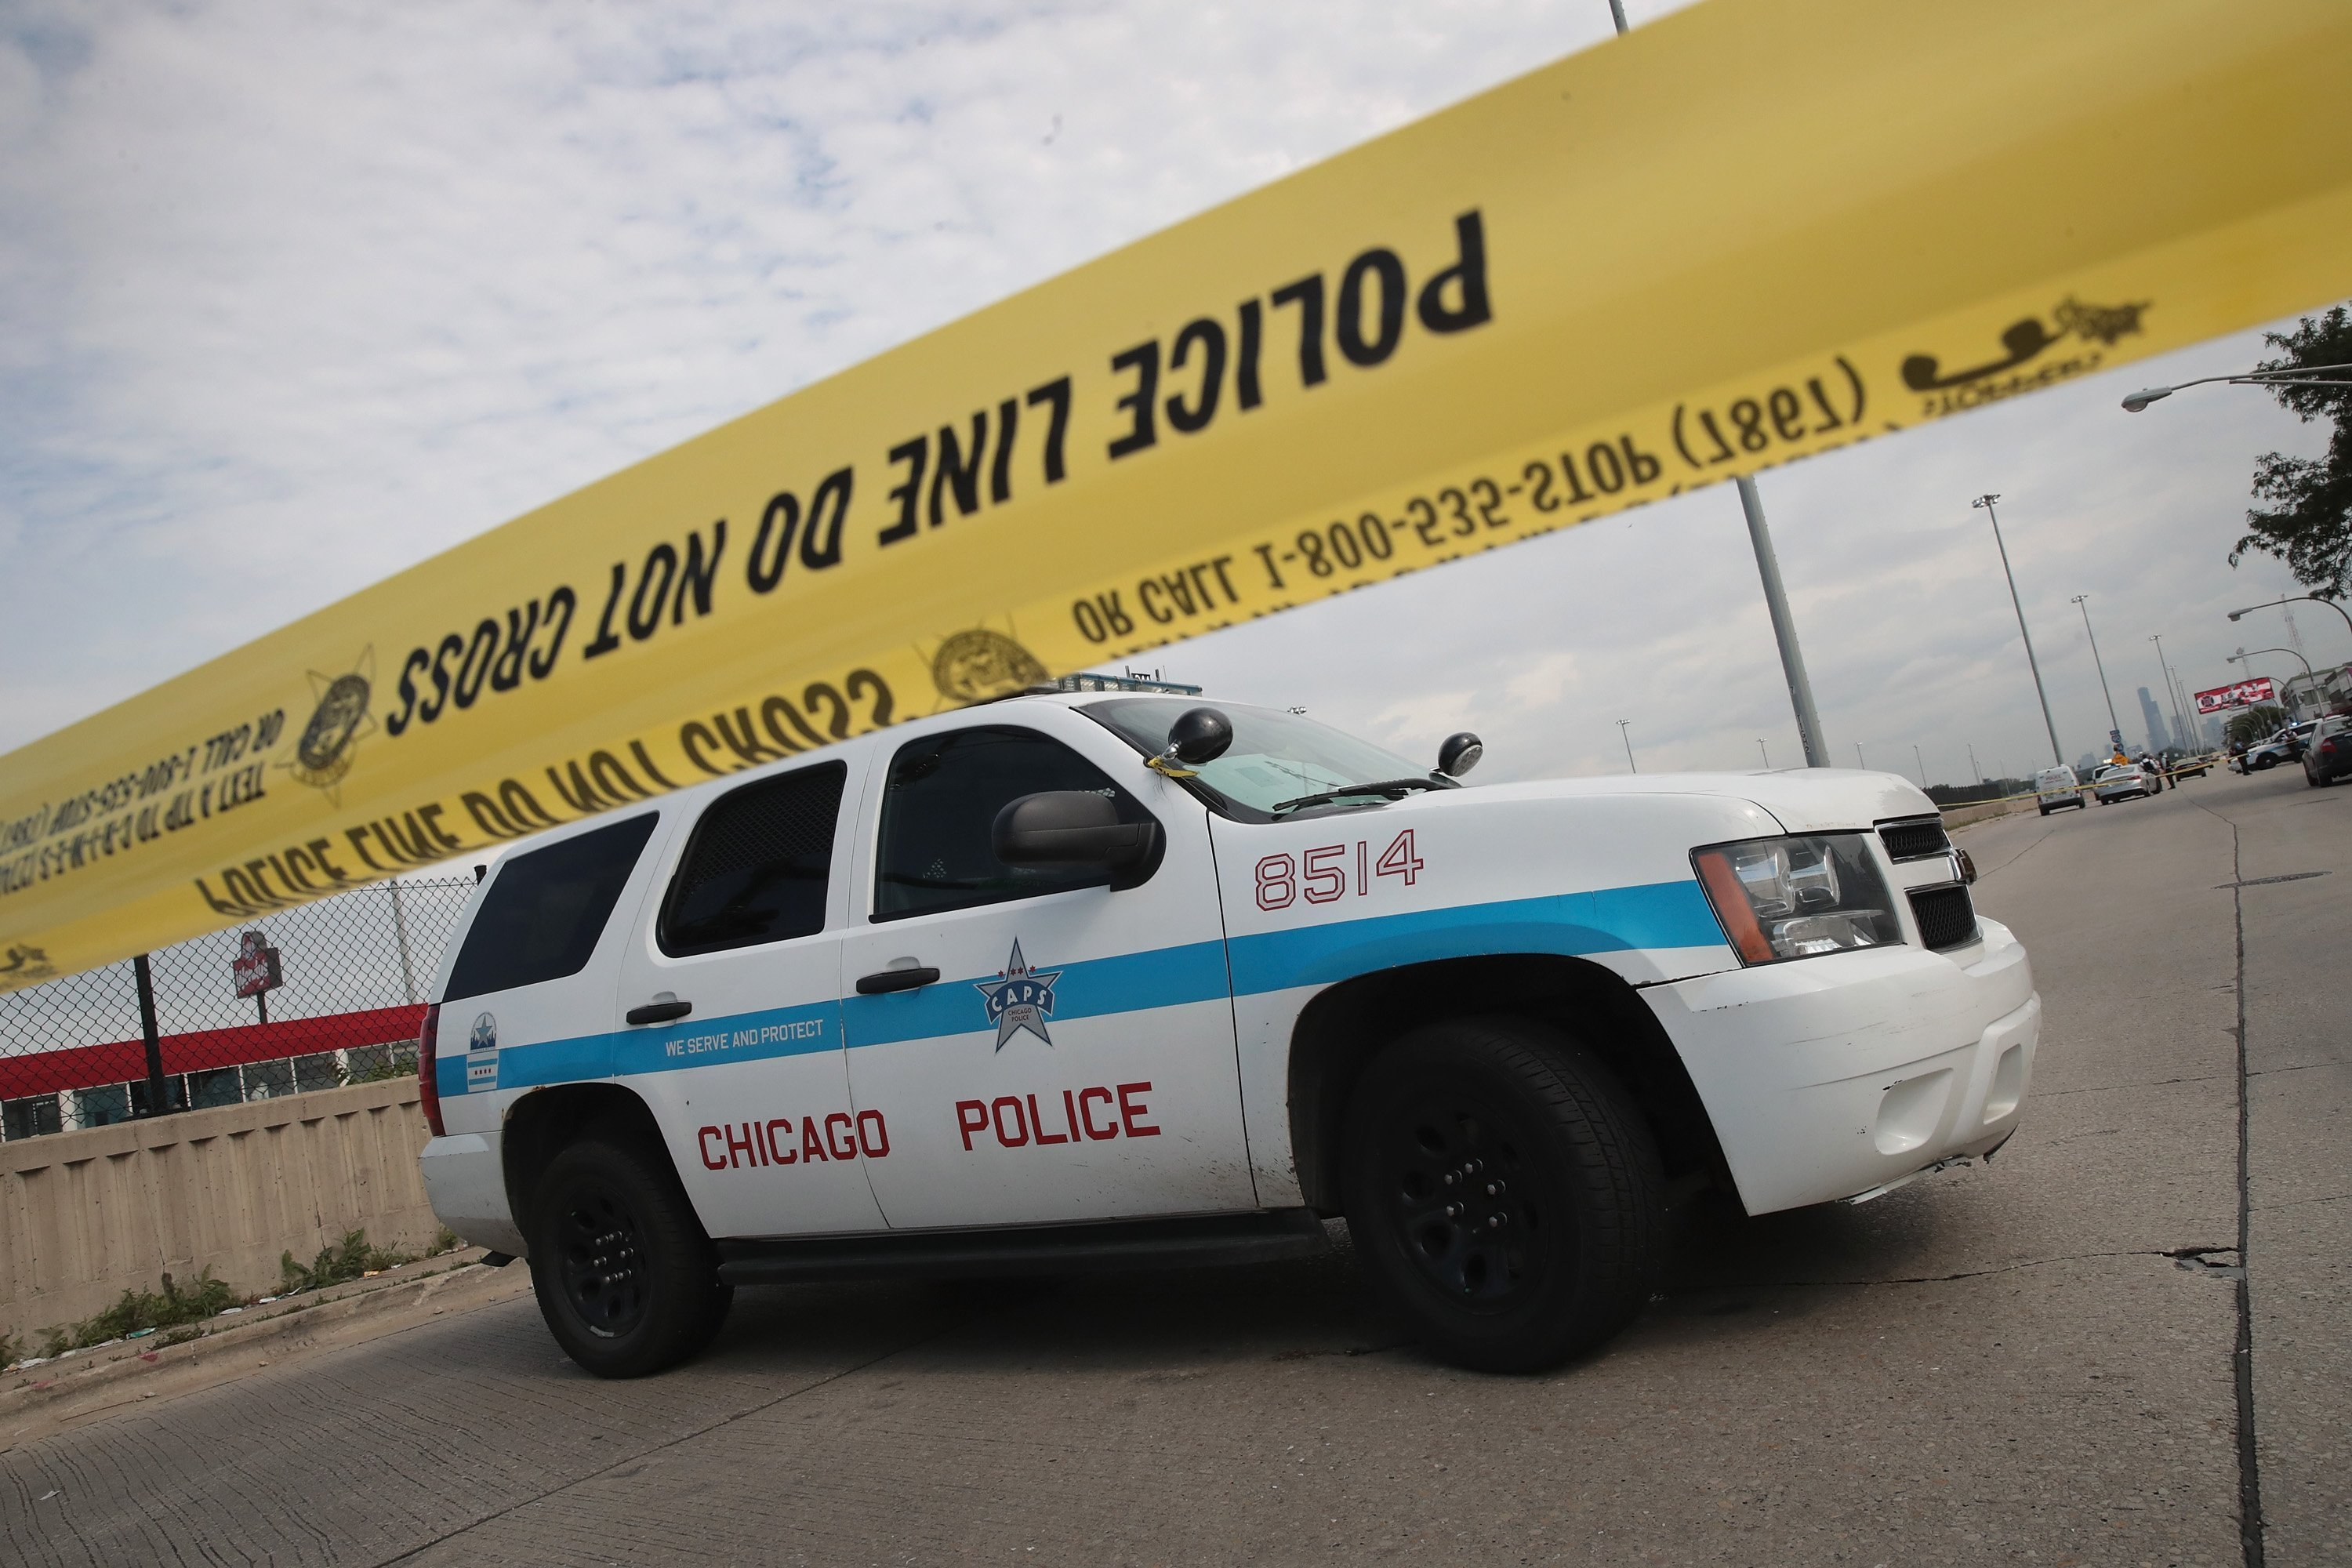 This weekend in Chicago at least 58 people were shot between Friday afternoon and late Sunday night, according to the Chicago Police Major Incident Notification System. (FILE)